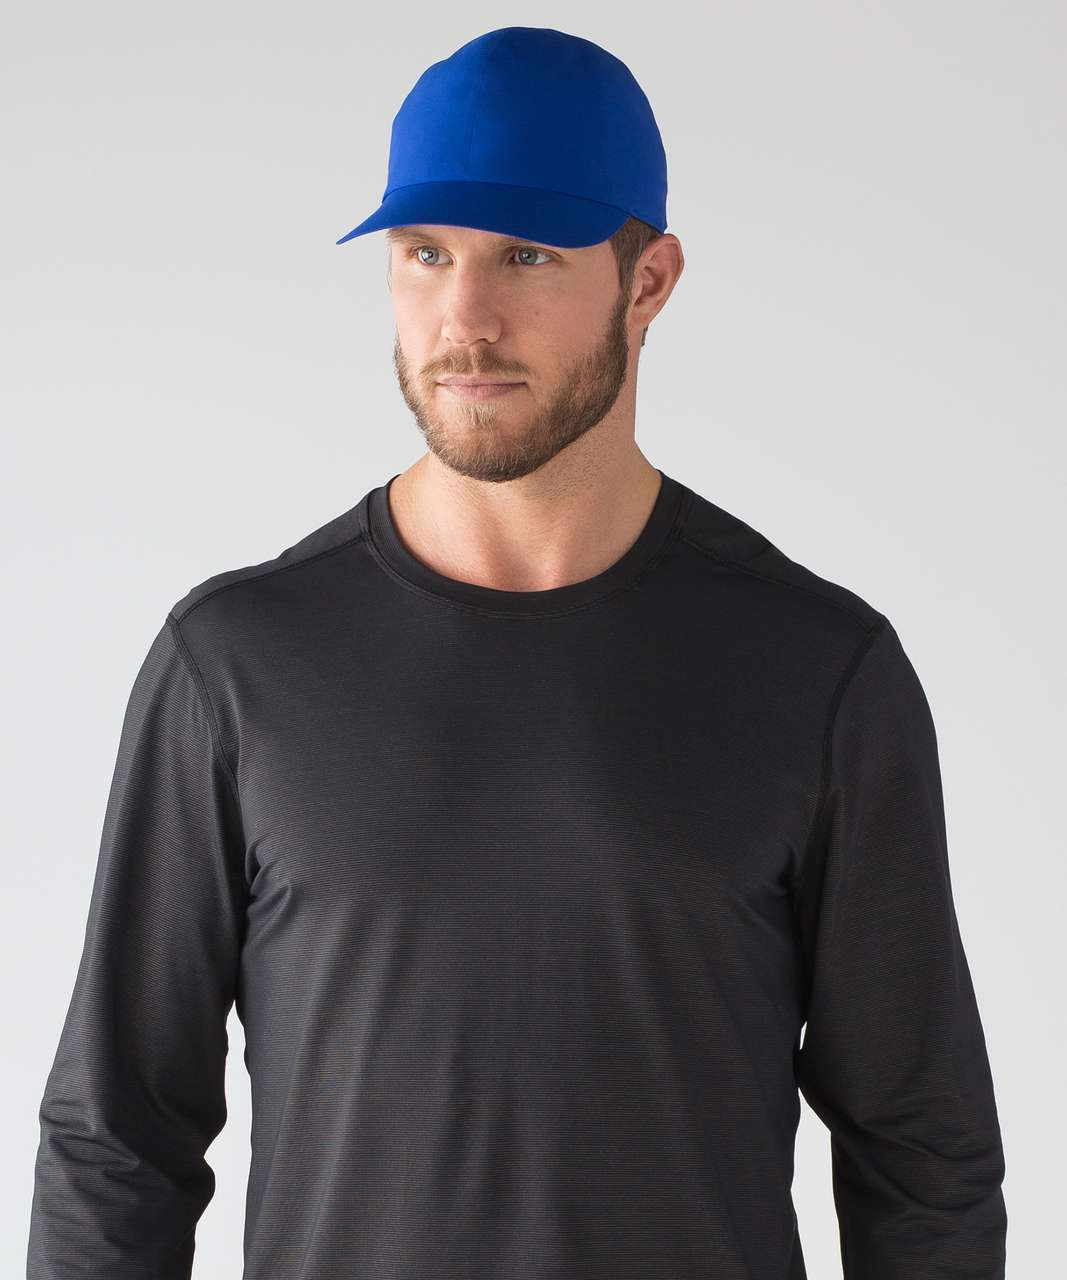 cf7b3db7 Lululemon Ultra Lightspeed Run Hat - Jet Stream - lulu fanatics